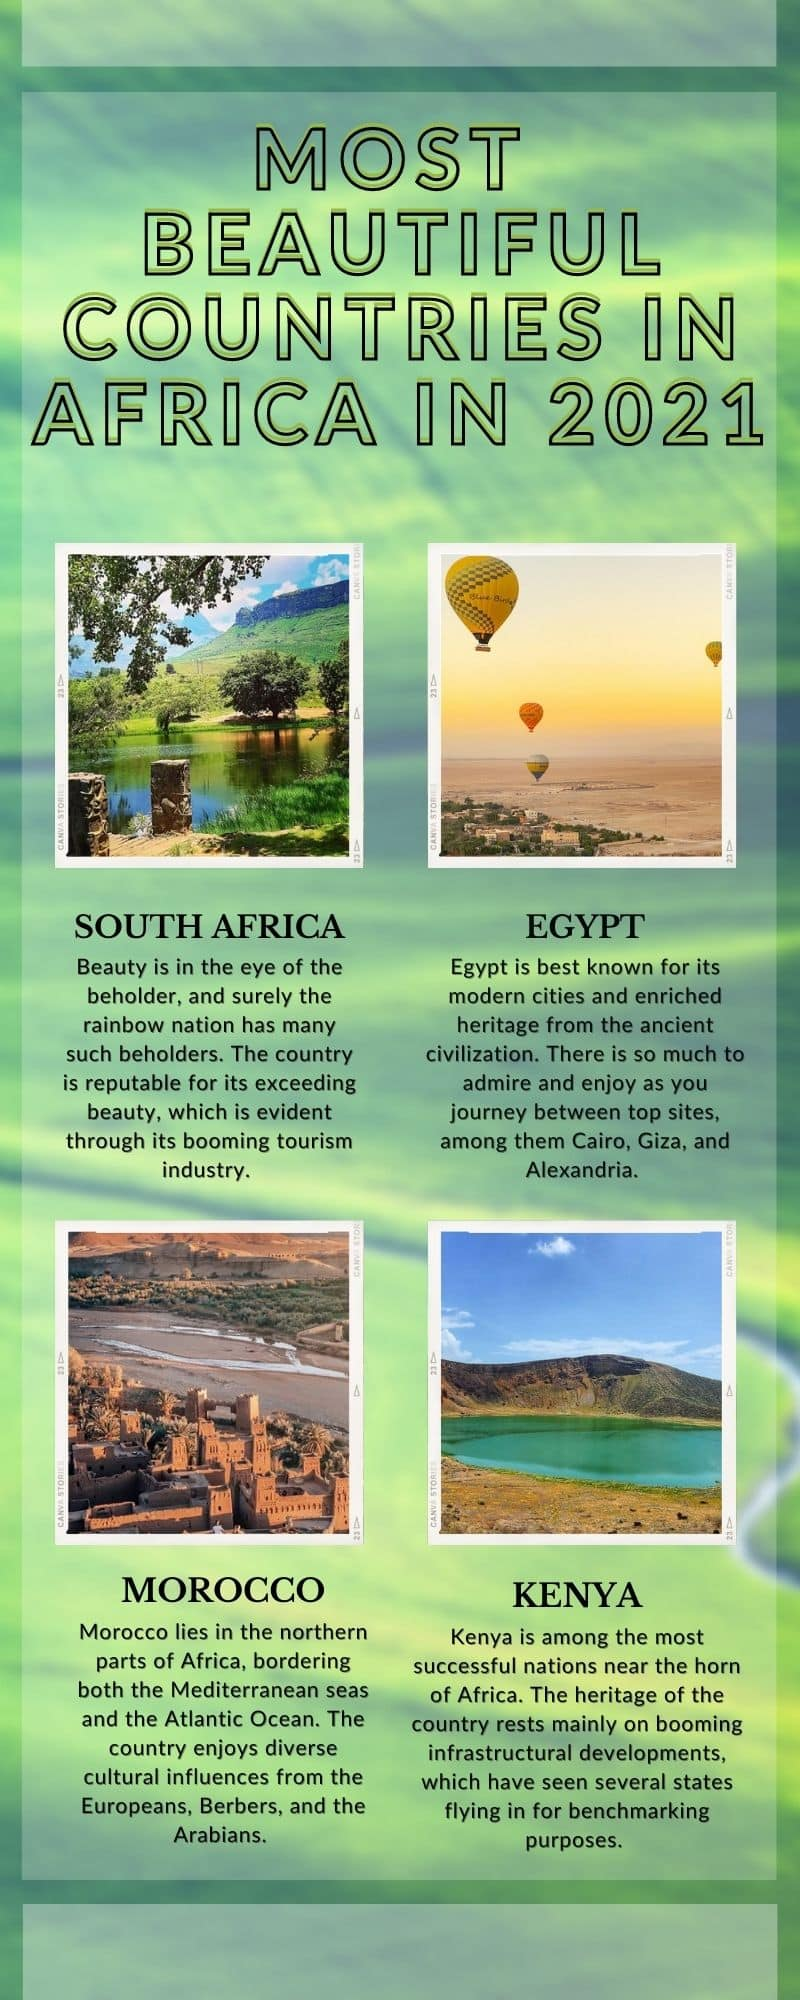 most beautiful countries in Africa